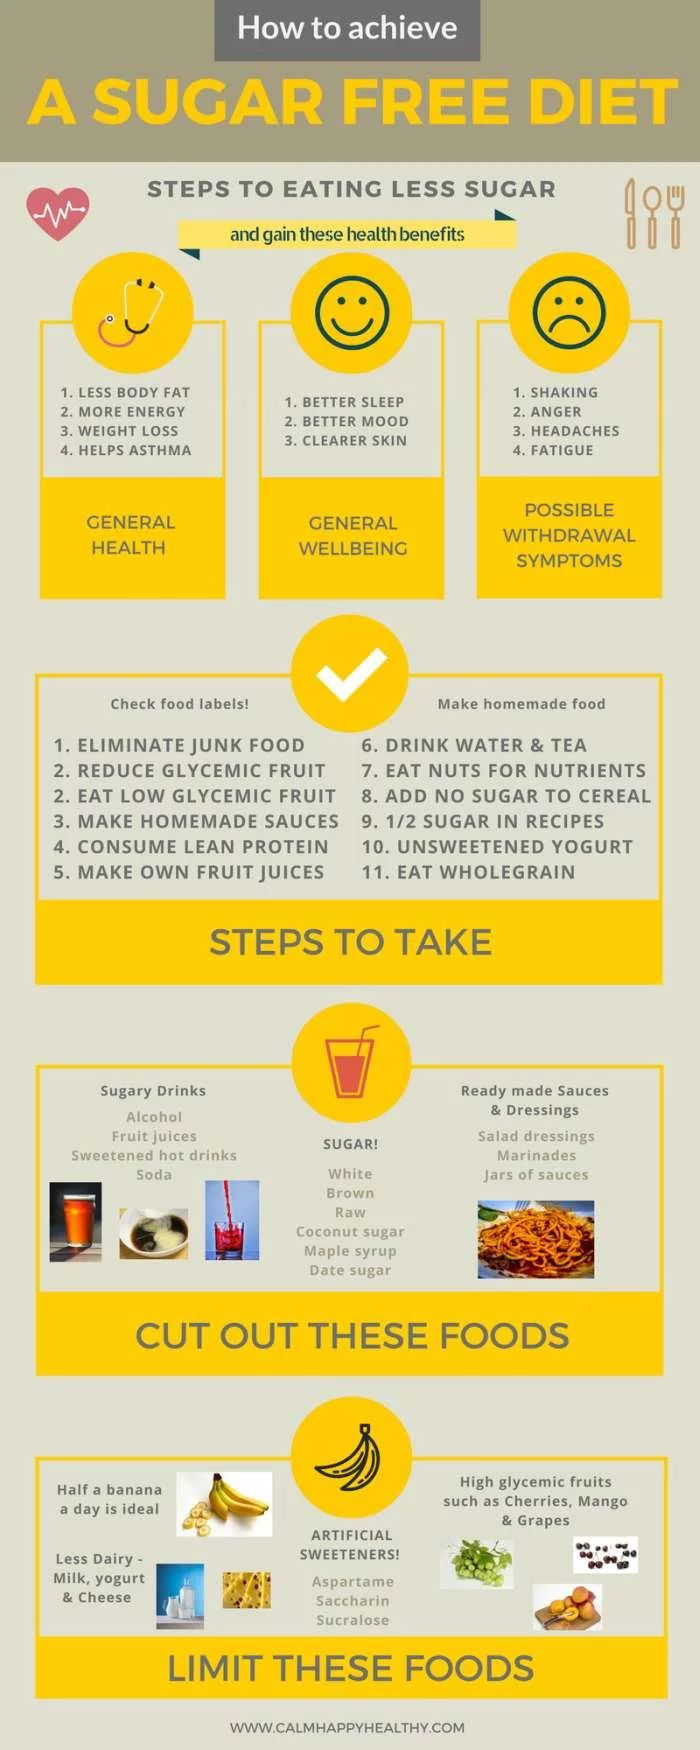 33 best 21 day sugar detox images on Pinterest   21 day sugar detox, Nutrition education and Paleo